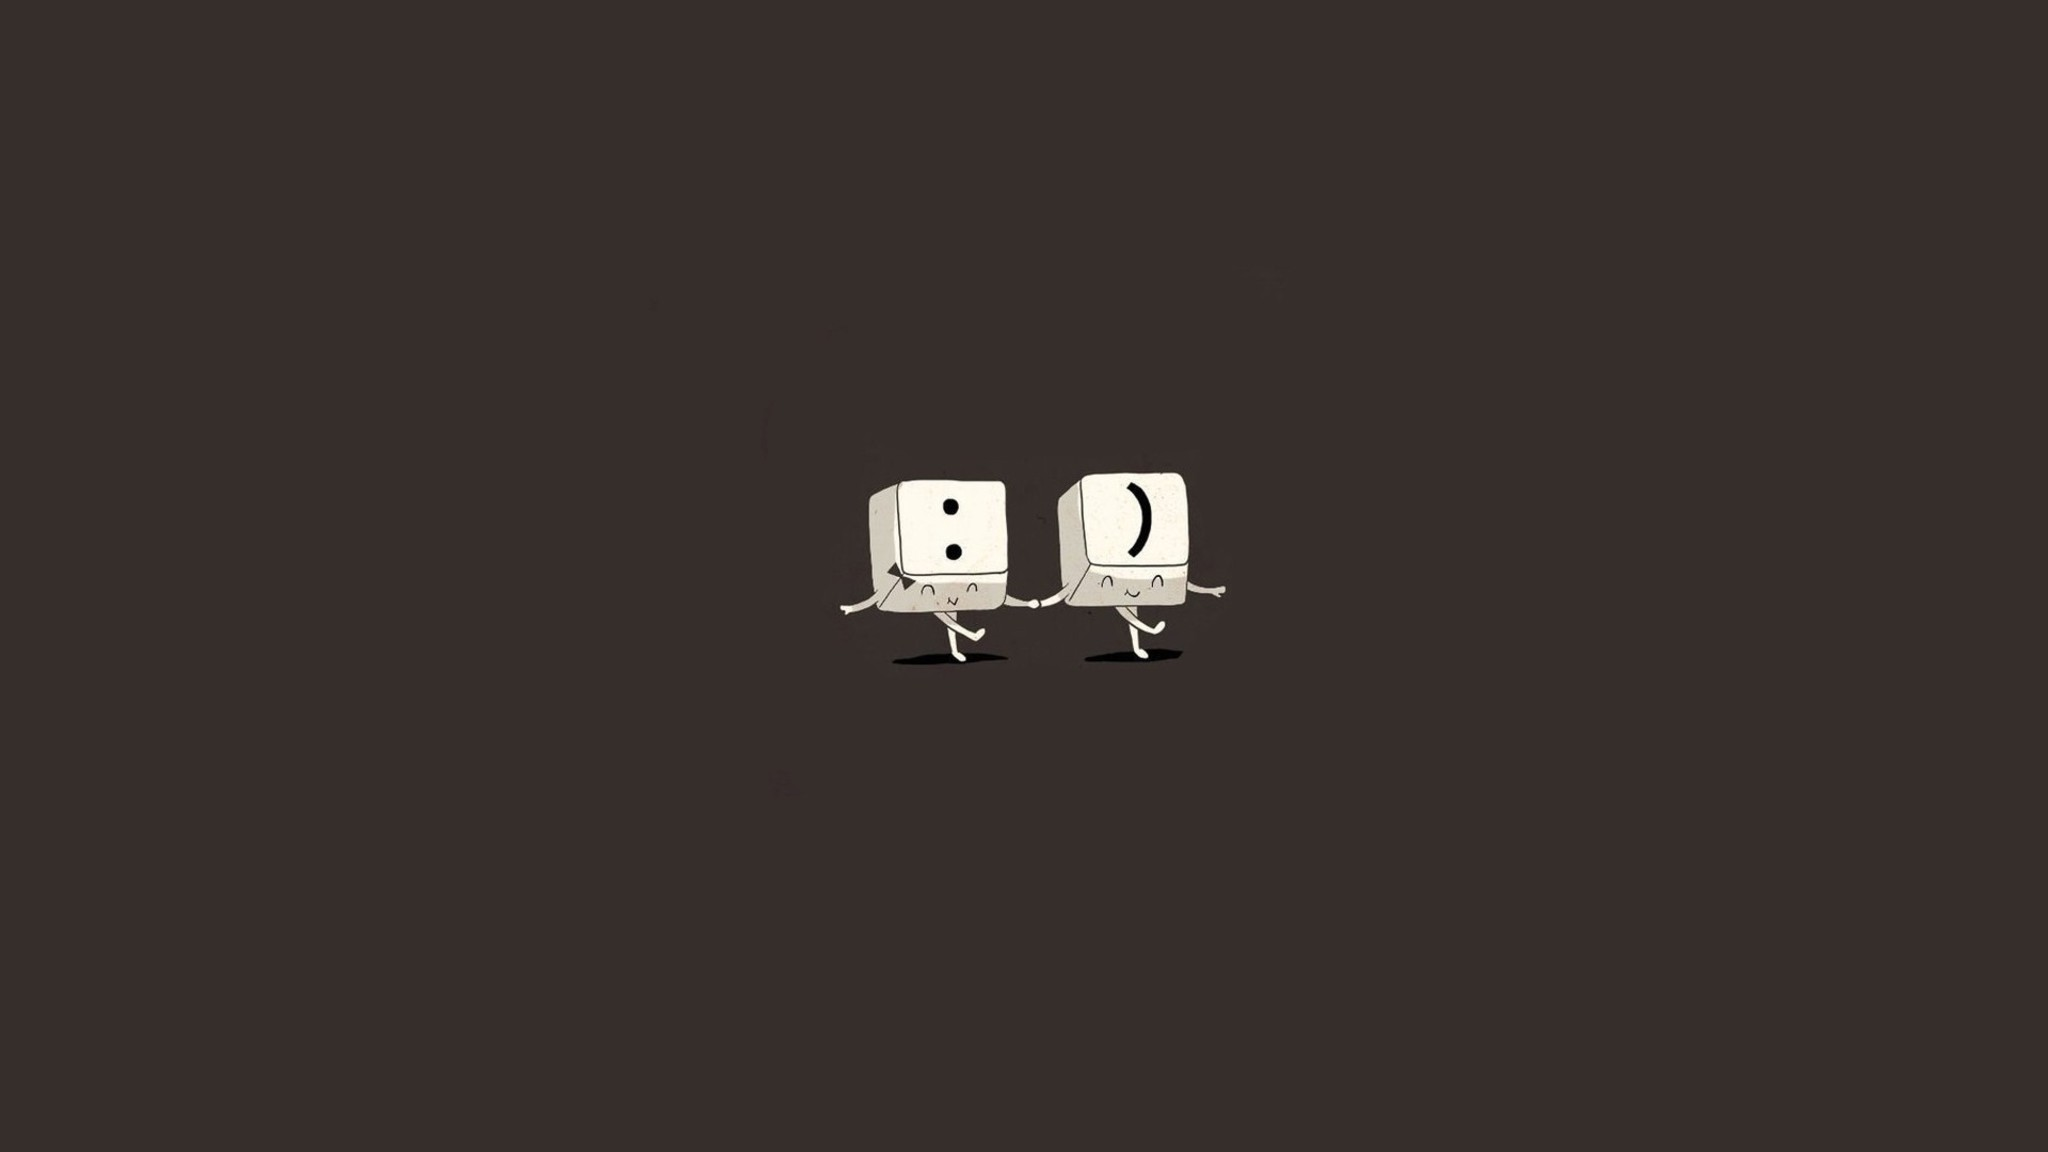 Minimalistic Happy Humor Funny Brown Background Wallpaper 2013